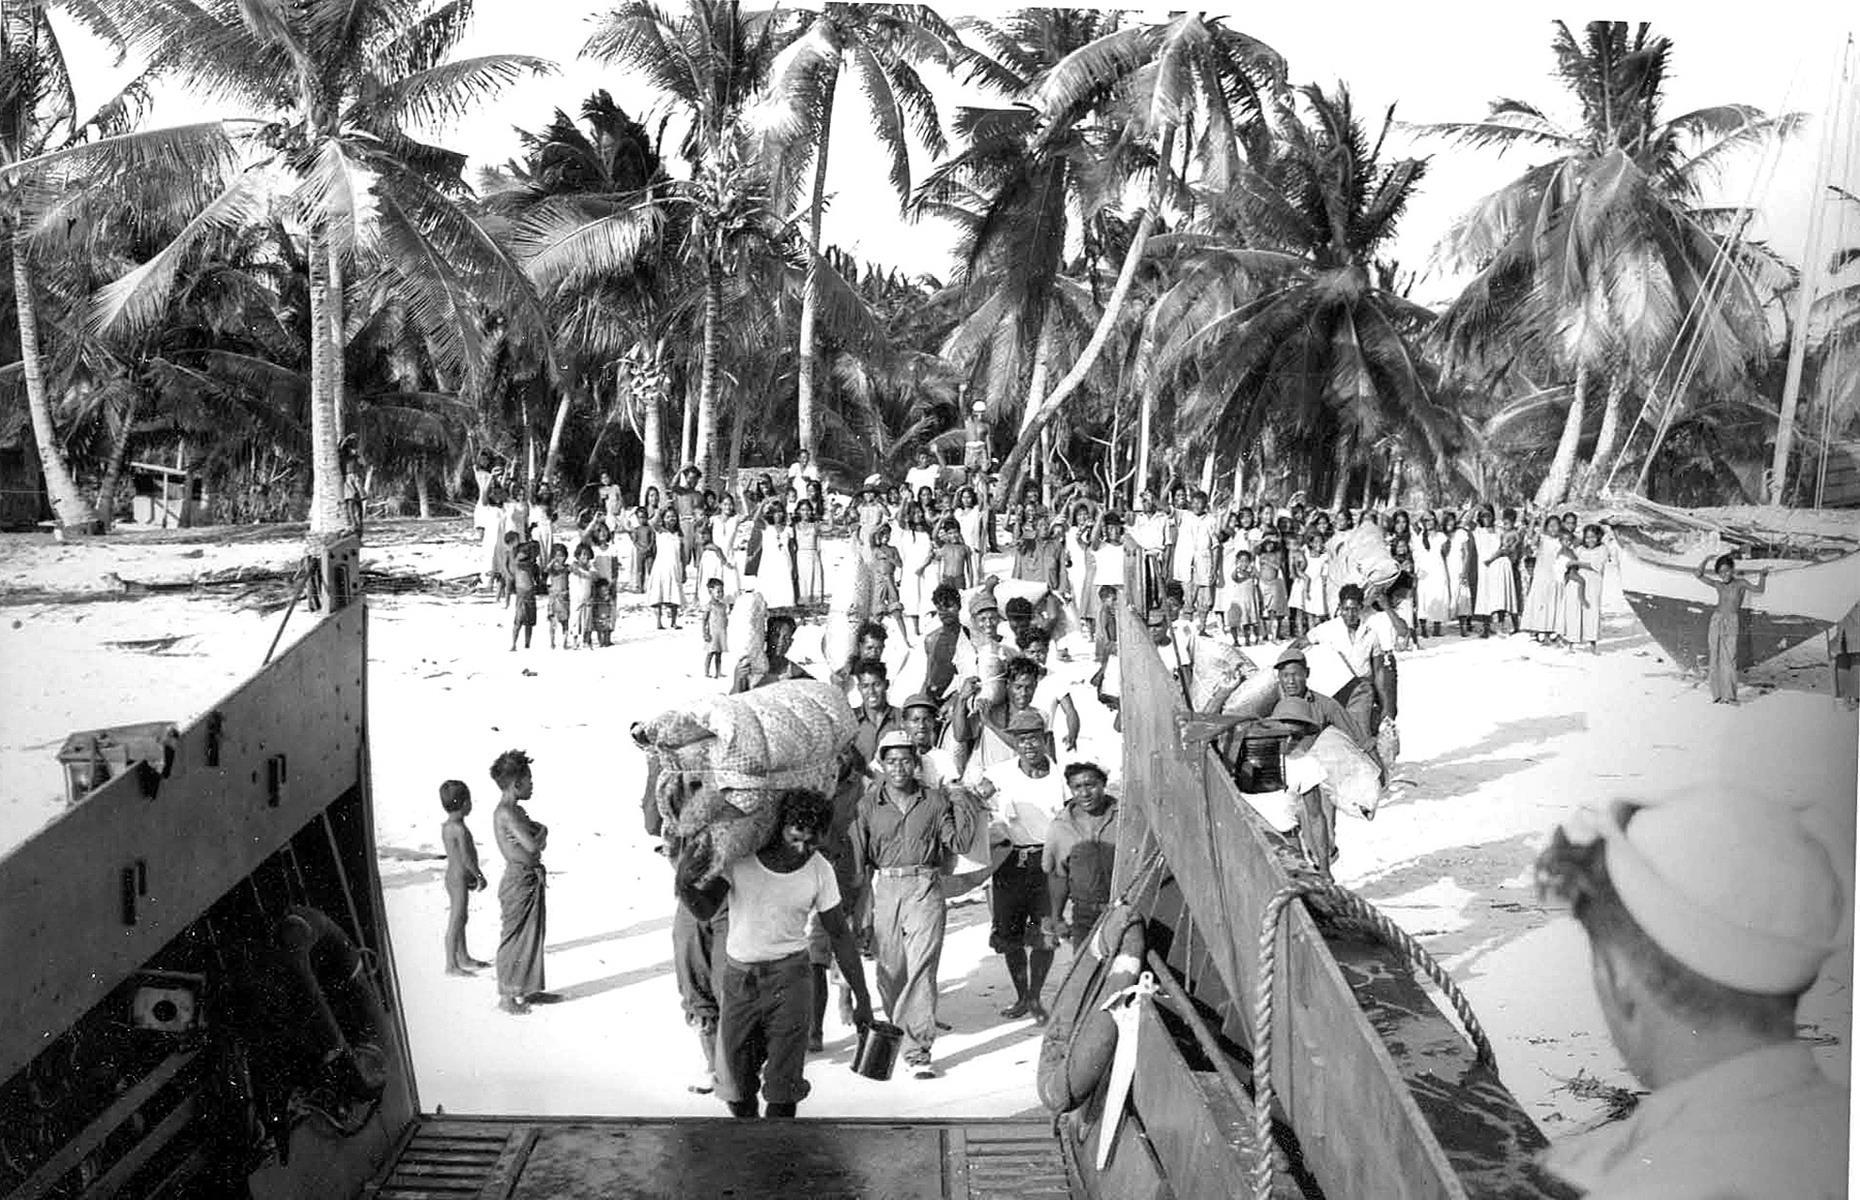 Slide 25 of 35: The islanders were evacuated (pictured here) but they were sadly never able to come back. Bikini Atoll's groundwater and soil became contaminated during the tests and it was not safe for the island's original residents to return home. Today the atoll's corals and marine life are showing signs of recovery and a few caretakers work on the island (though they must bring food and water provisions with them from elsewhere). The atoll remains otherwise deserted.